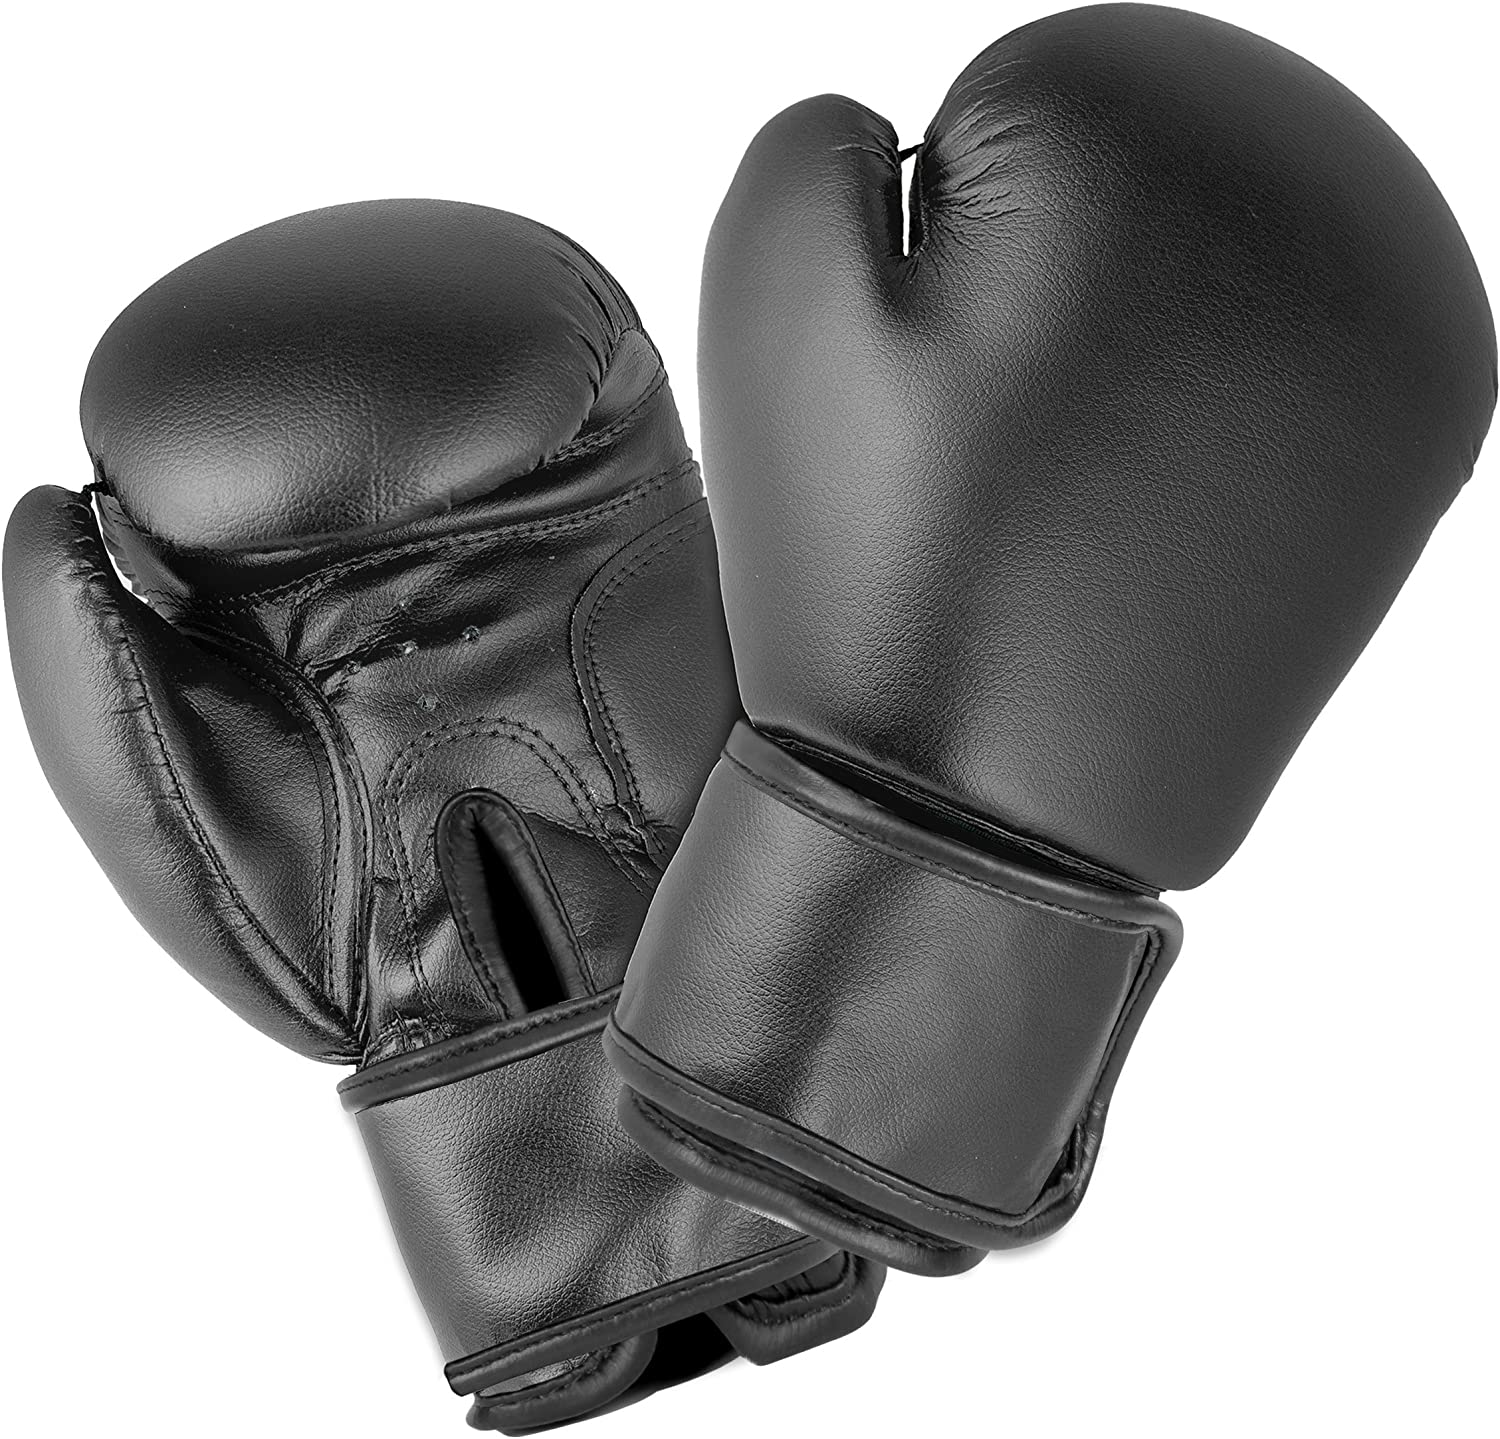 Lions Pro Curved Focus Pads And Gloves Boxing MMA Hook /& Jab Sparring Strike Pad Set Free Cotton Wraps